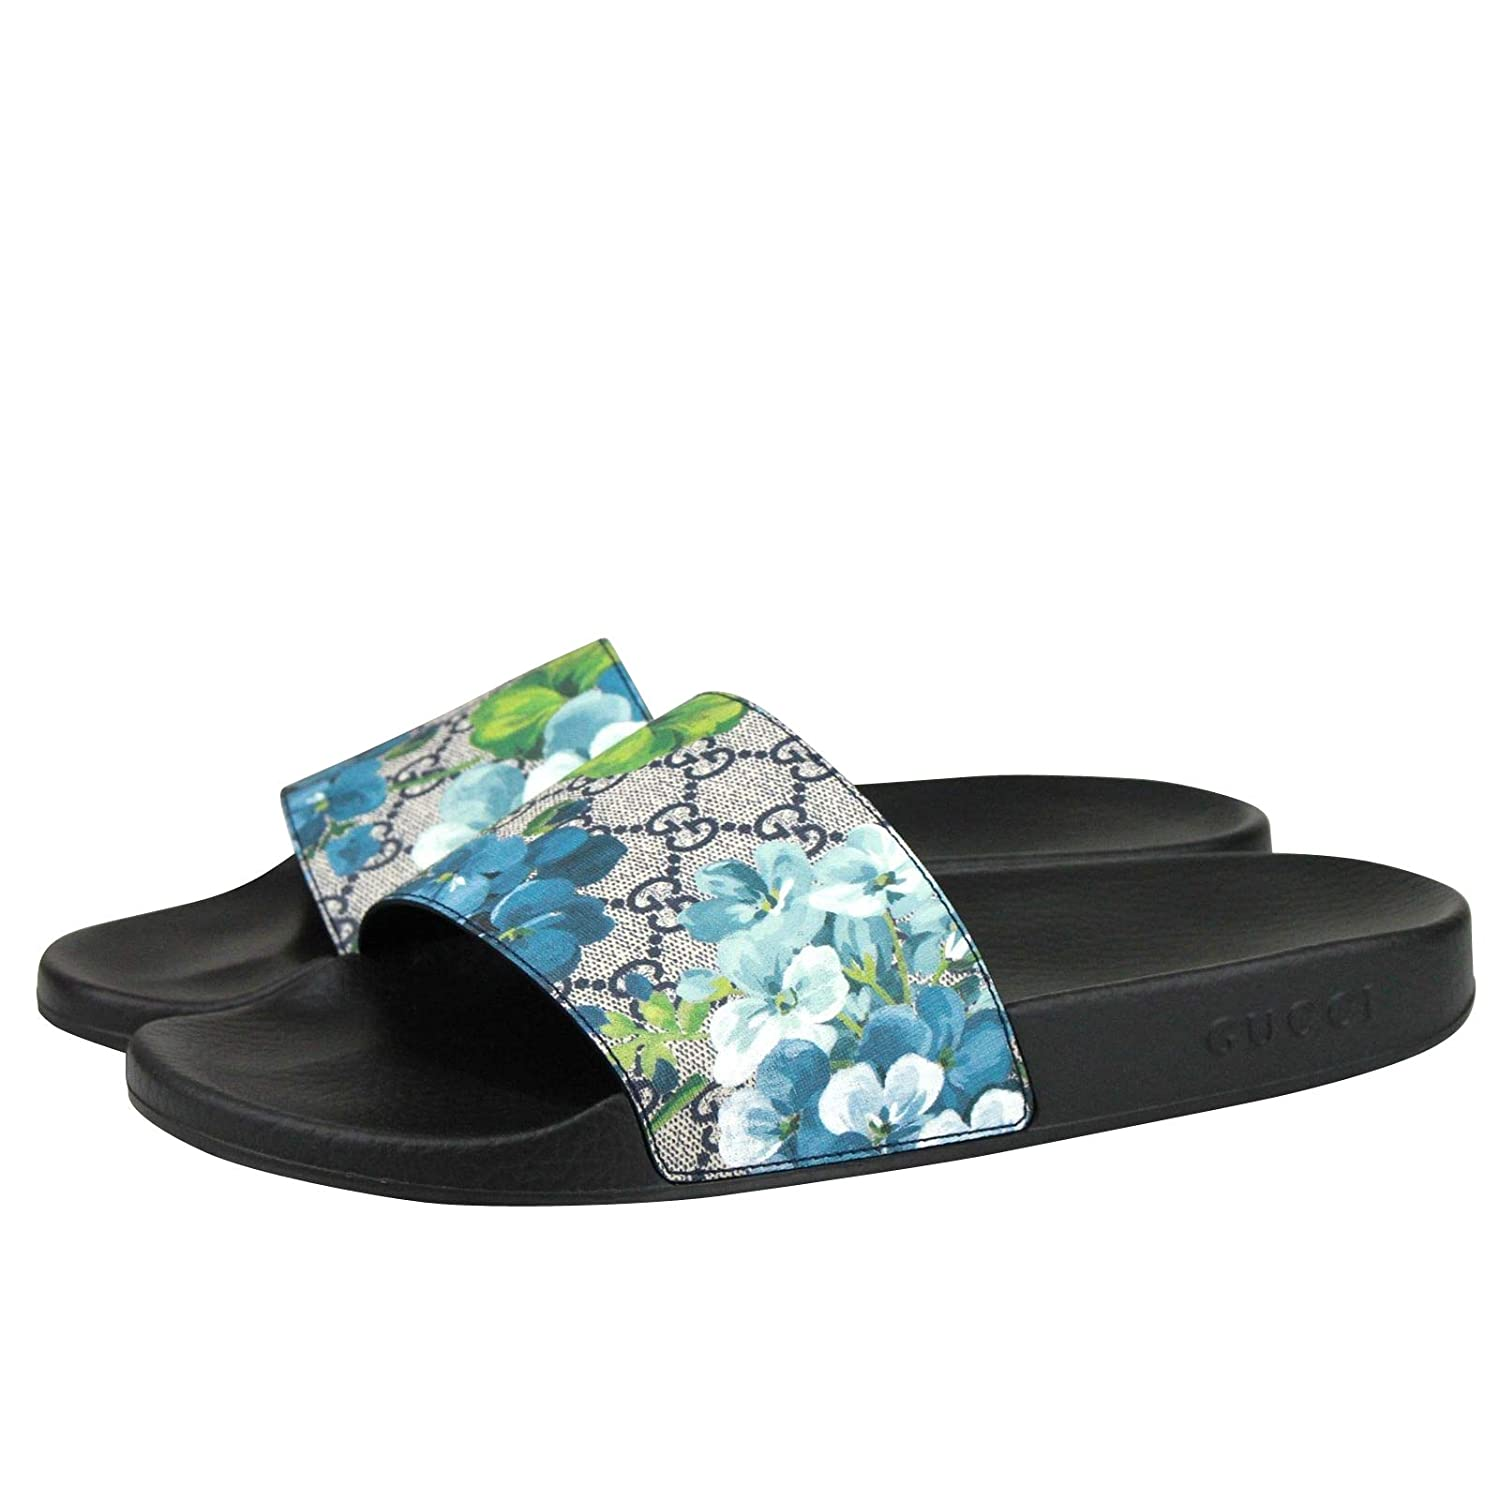 2e213679491 Amazon.com  Gucci Bloom Print Blue Supreme GG Canvas Flower Slide Sandals  407345 8498 (14 G   15 US)  Shoes